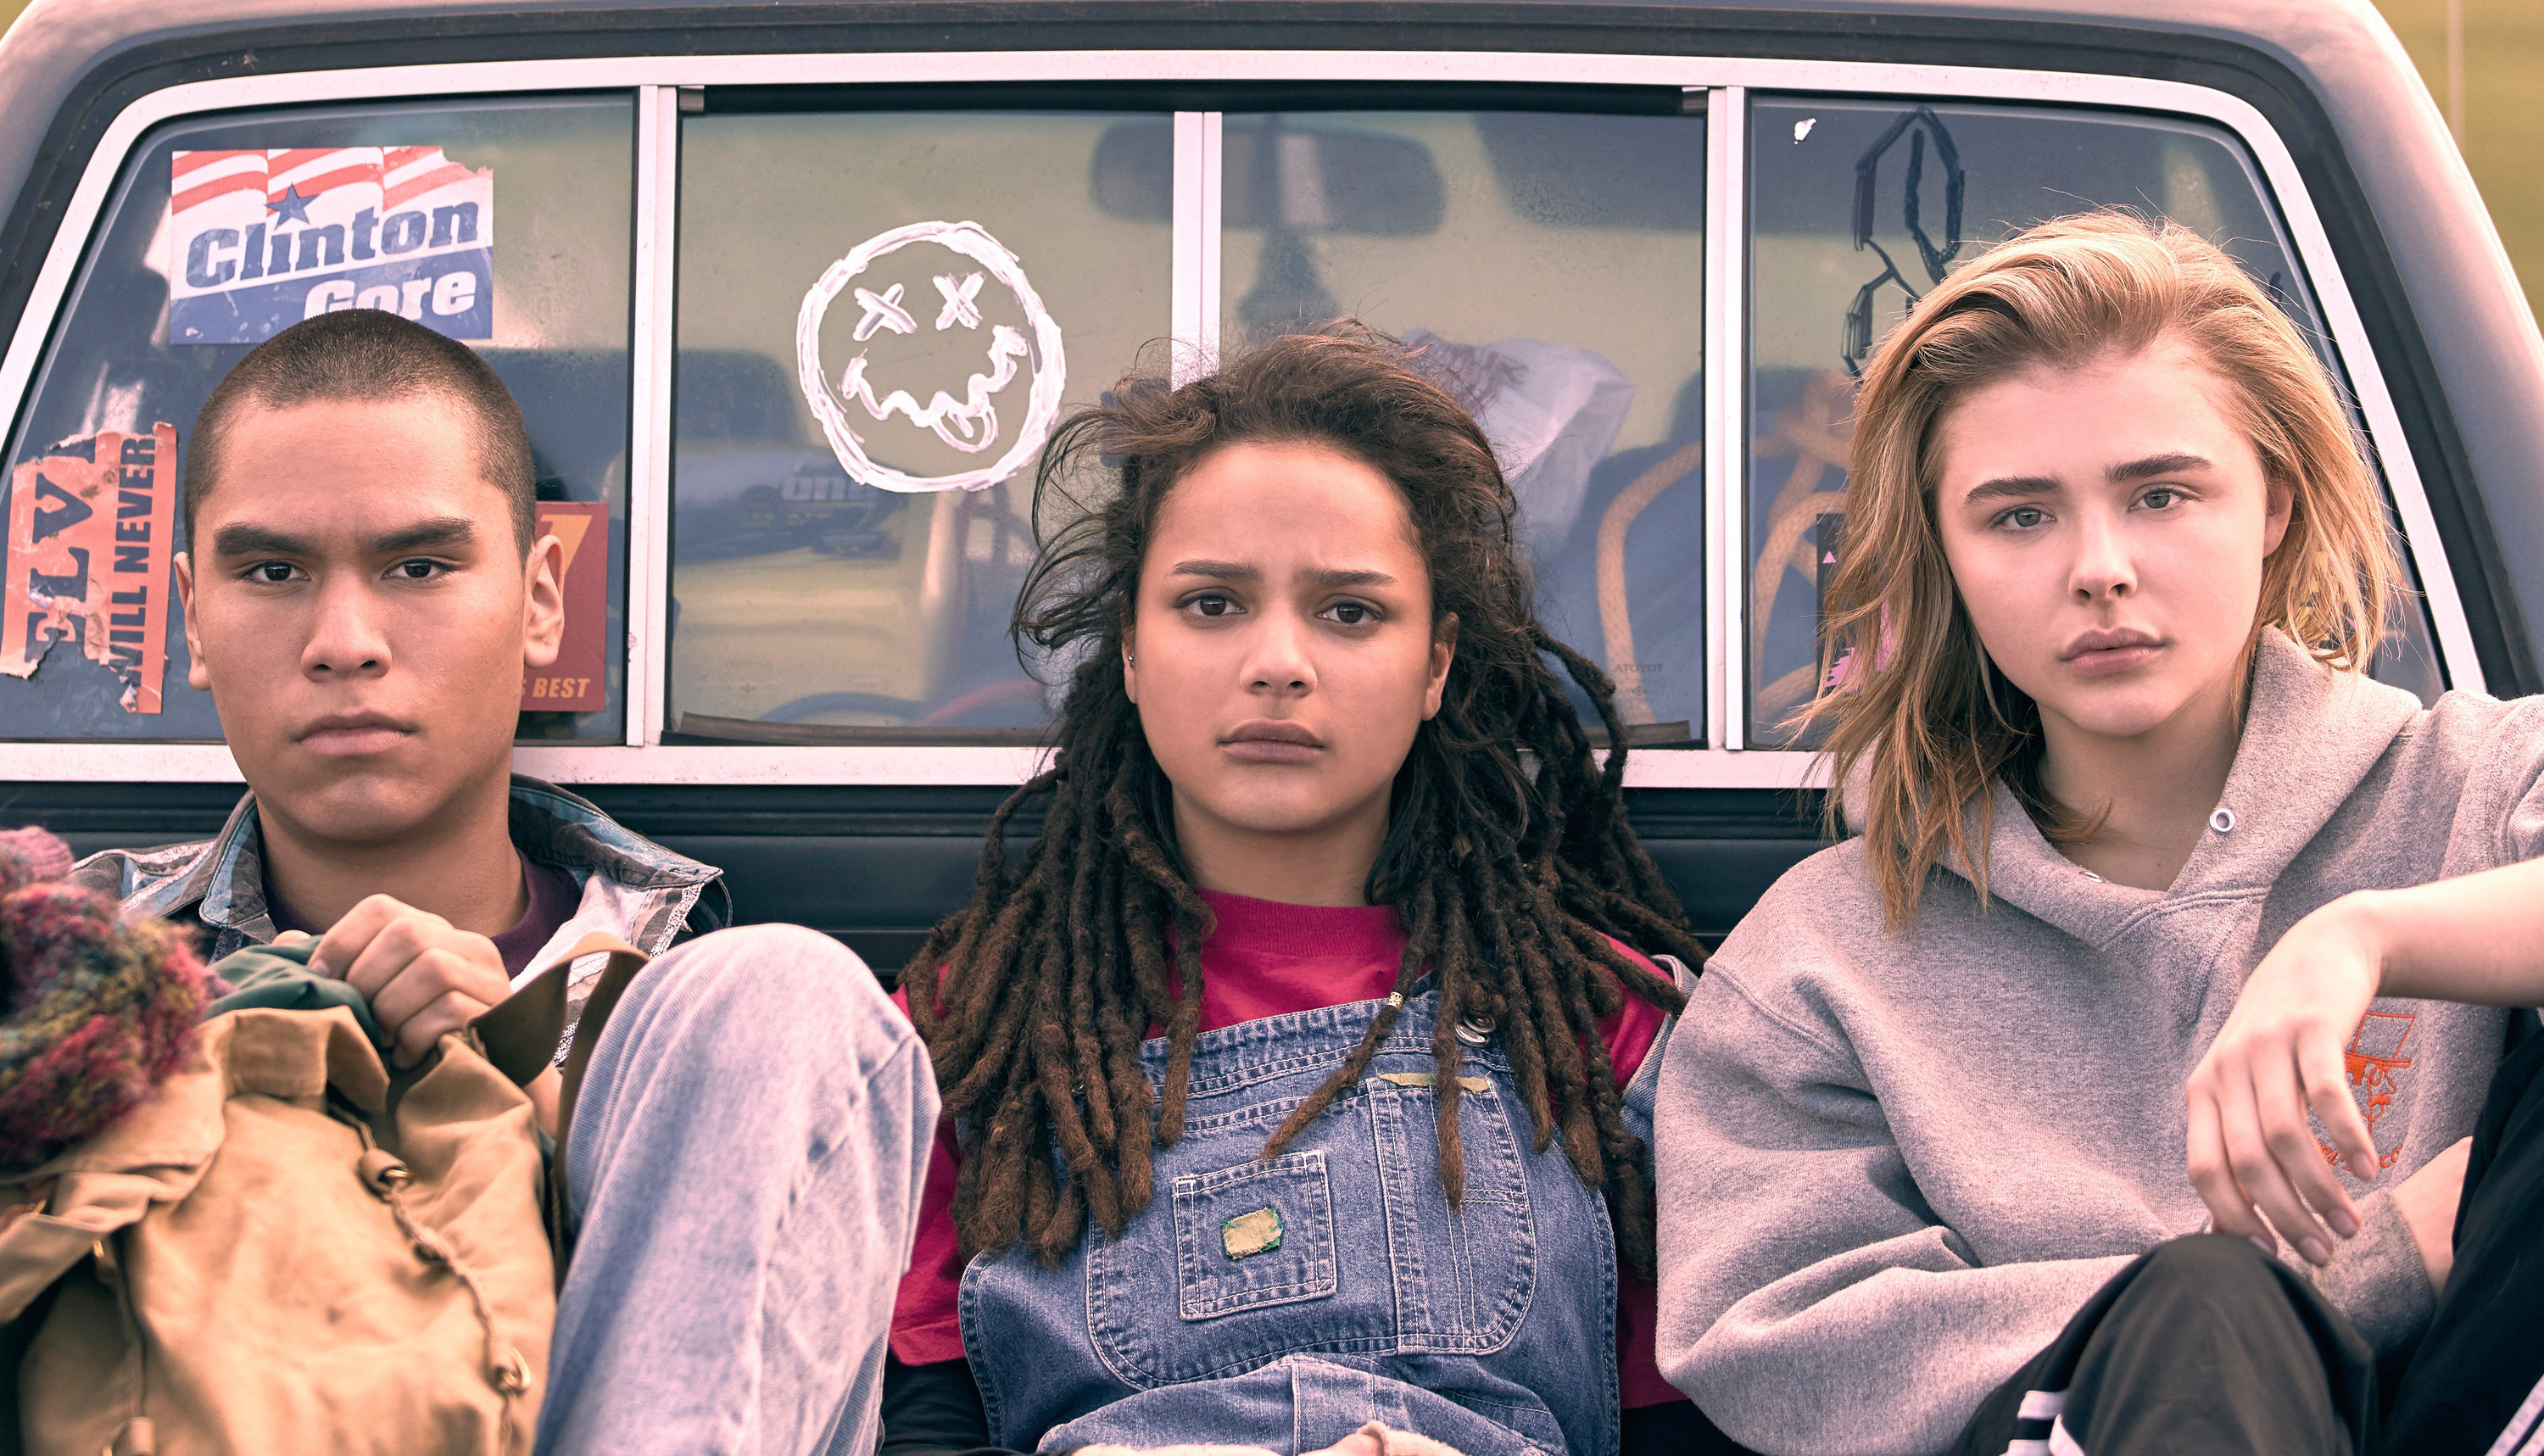 19 Best Teen Movies on Netflix | Teen Films to Watch This Weekend